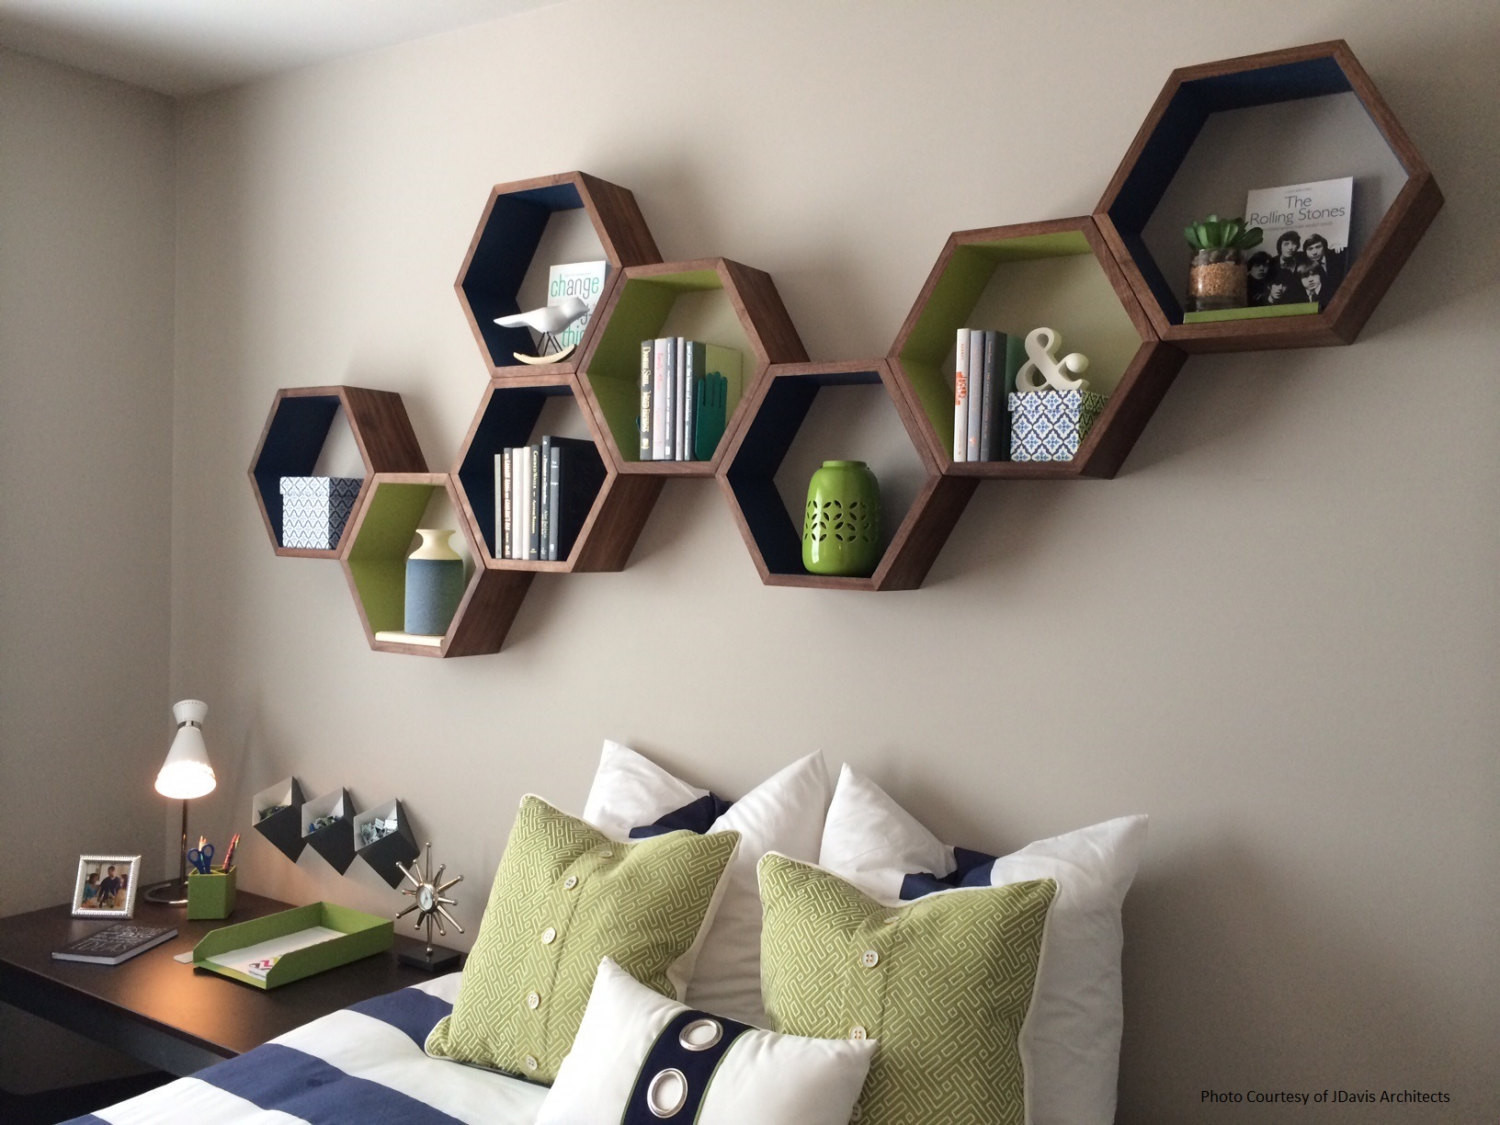 Handmade Wall Decor 20 Creative Ways to Decorate Your Home with Unexpected